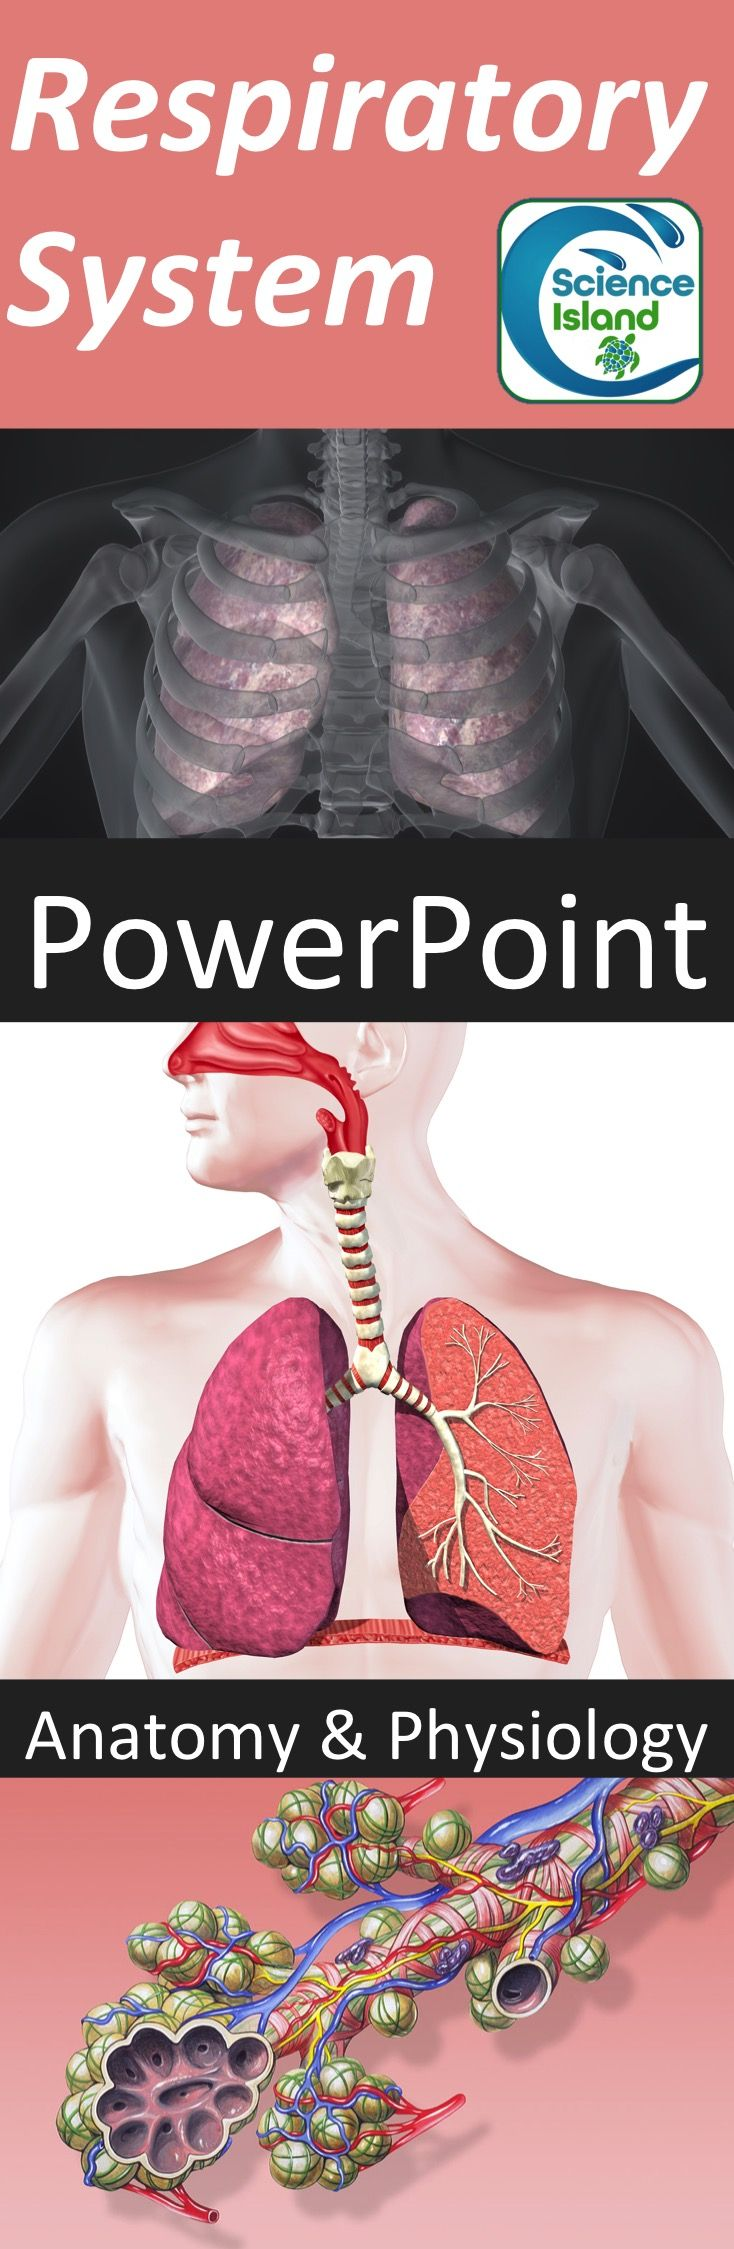 163 best anatomy physiology curriculum images on pinterest clear concise and comprehensive powerpoint and notes covers the respiratory system designed for high ccuart Image collections